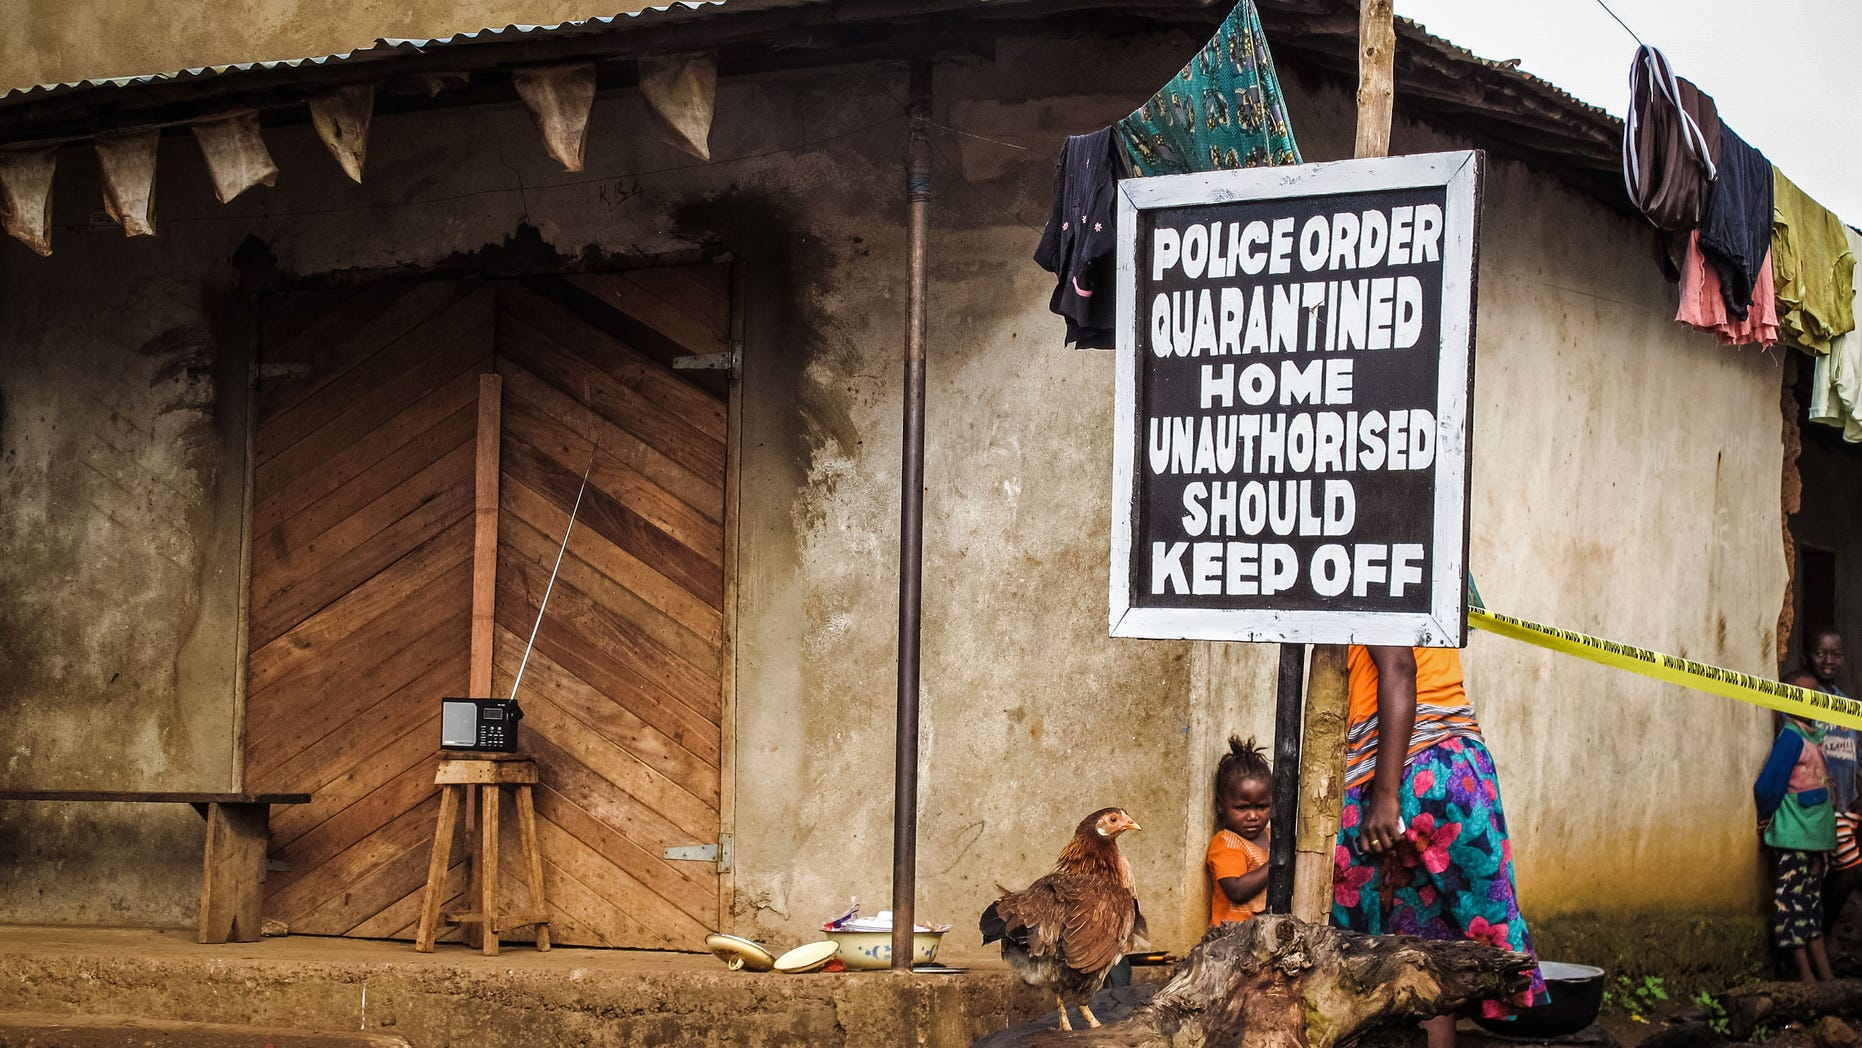 In this file photo taken on Wednesday, Oct. 22, 2014, A child, center, stands underneath a signboard as a family home is placed under quarantine due to the Ebola virus in Port Loko, Sierra Leone. (AP Photo/Michael Duff, File)